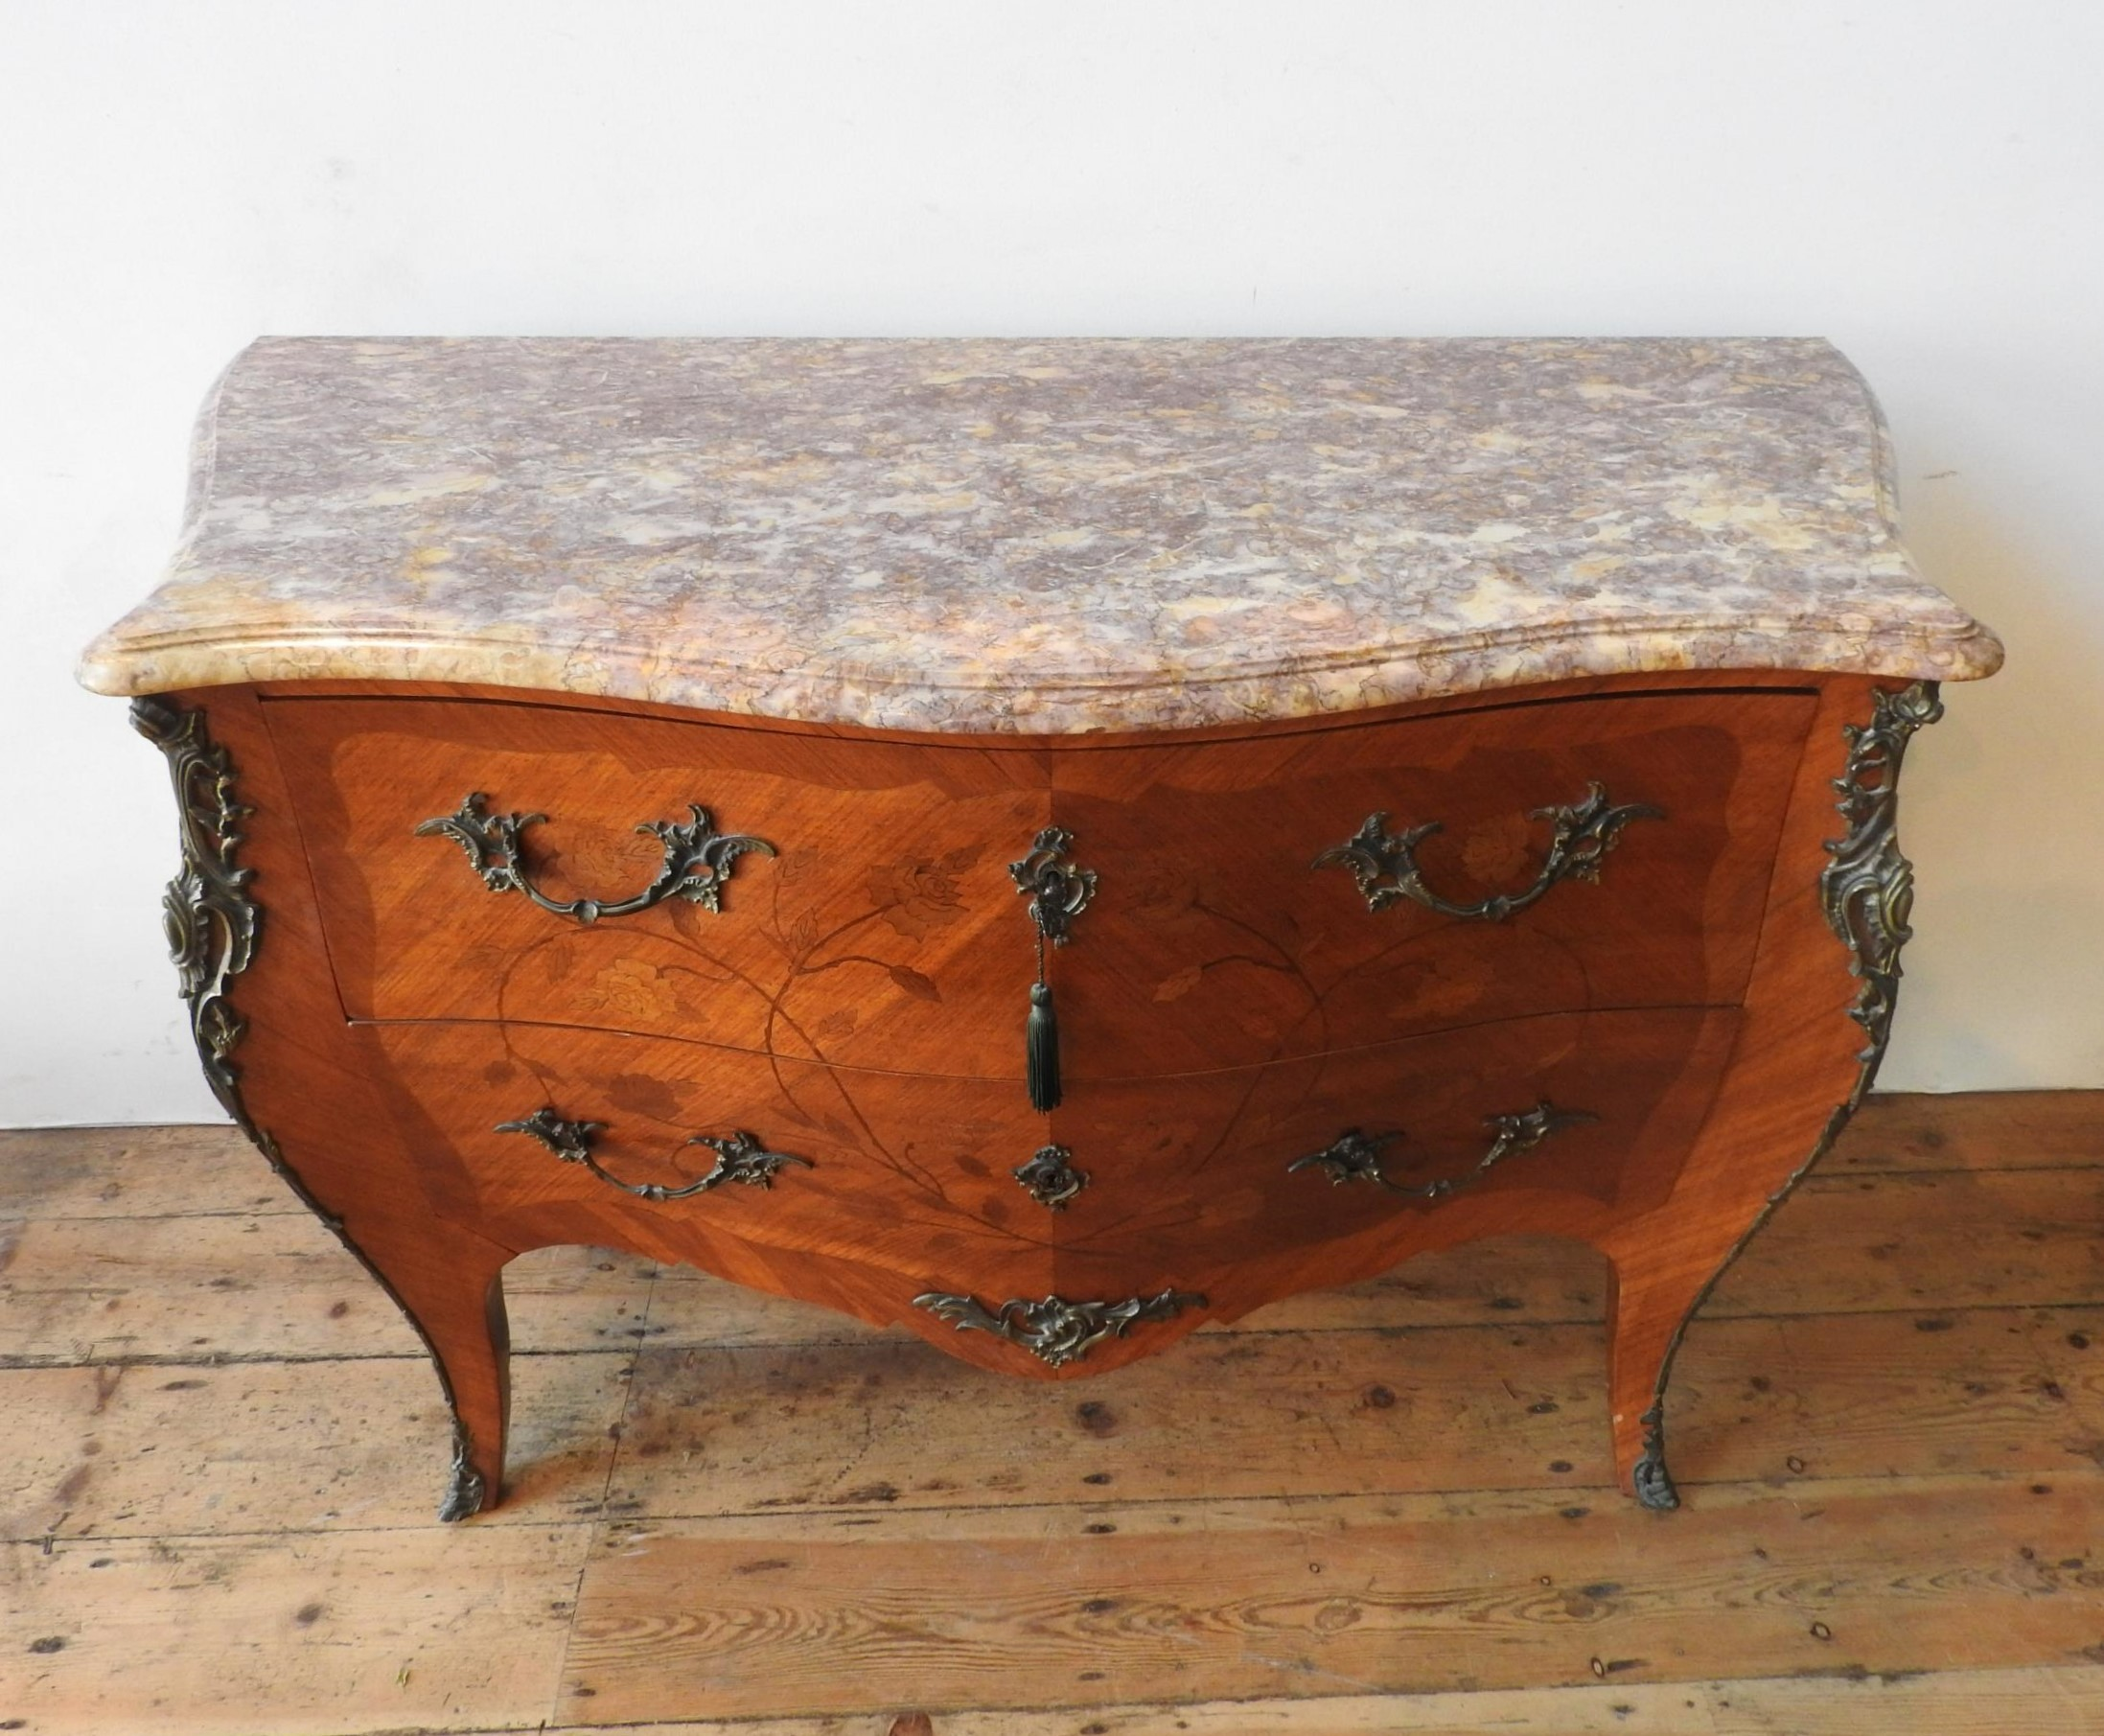 A 20th CENTURY LOUIS XV STYLE CONTINENTAL MARBLE TOP BOMBE CHEST, the two drawer chest with floral